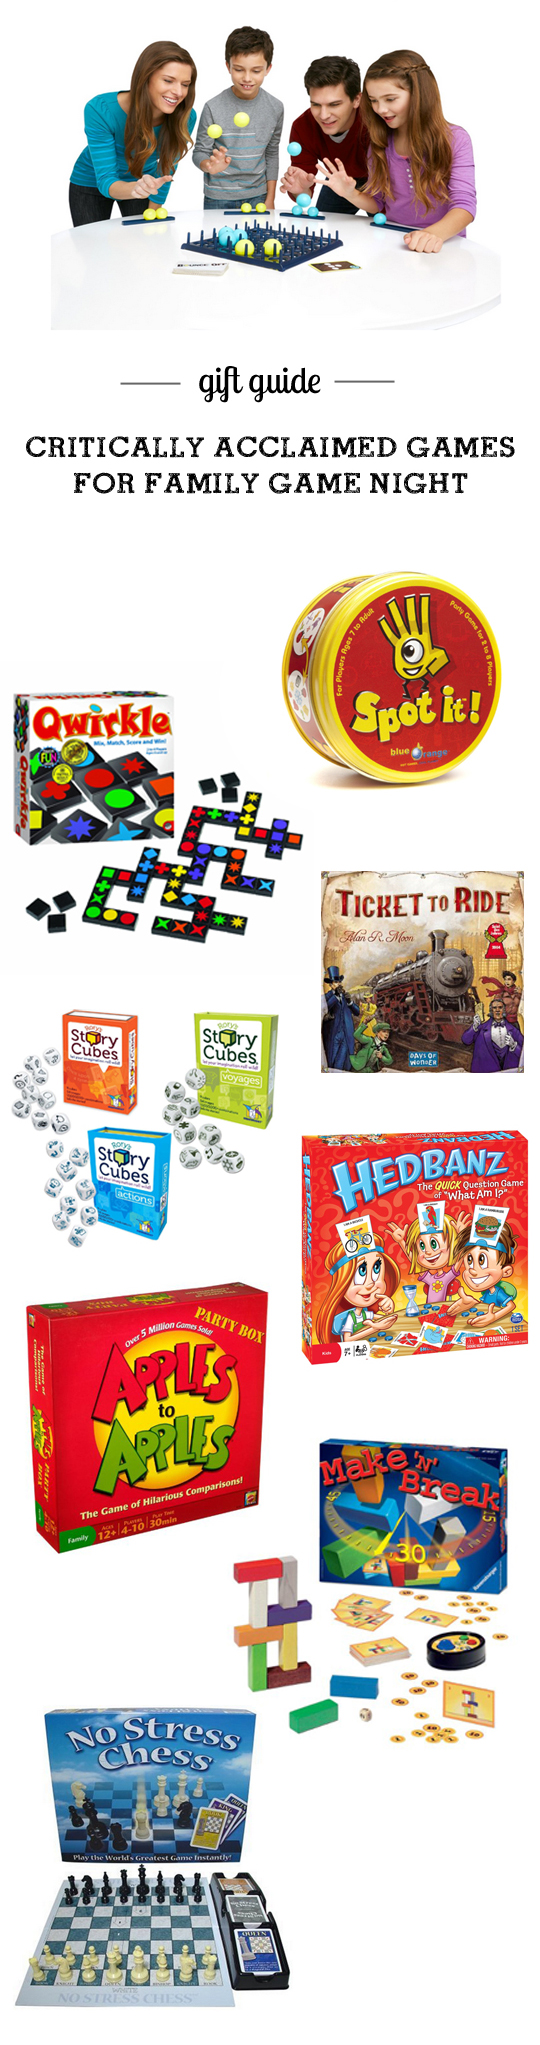 Gift guide: best games kid and family game night - part of 10 super helpful toy guides with detailed descriptions and age recs.